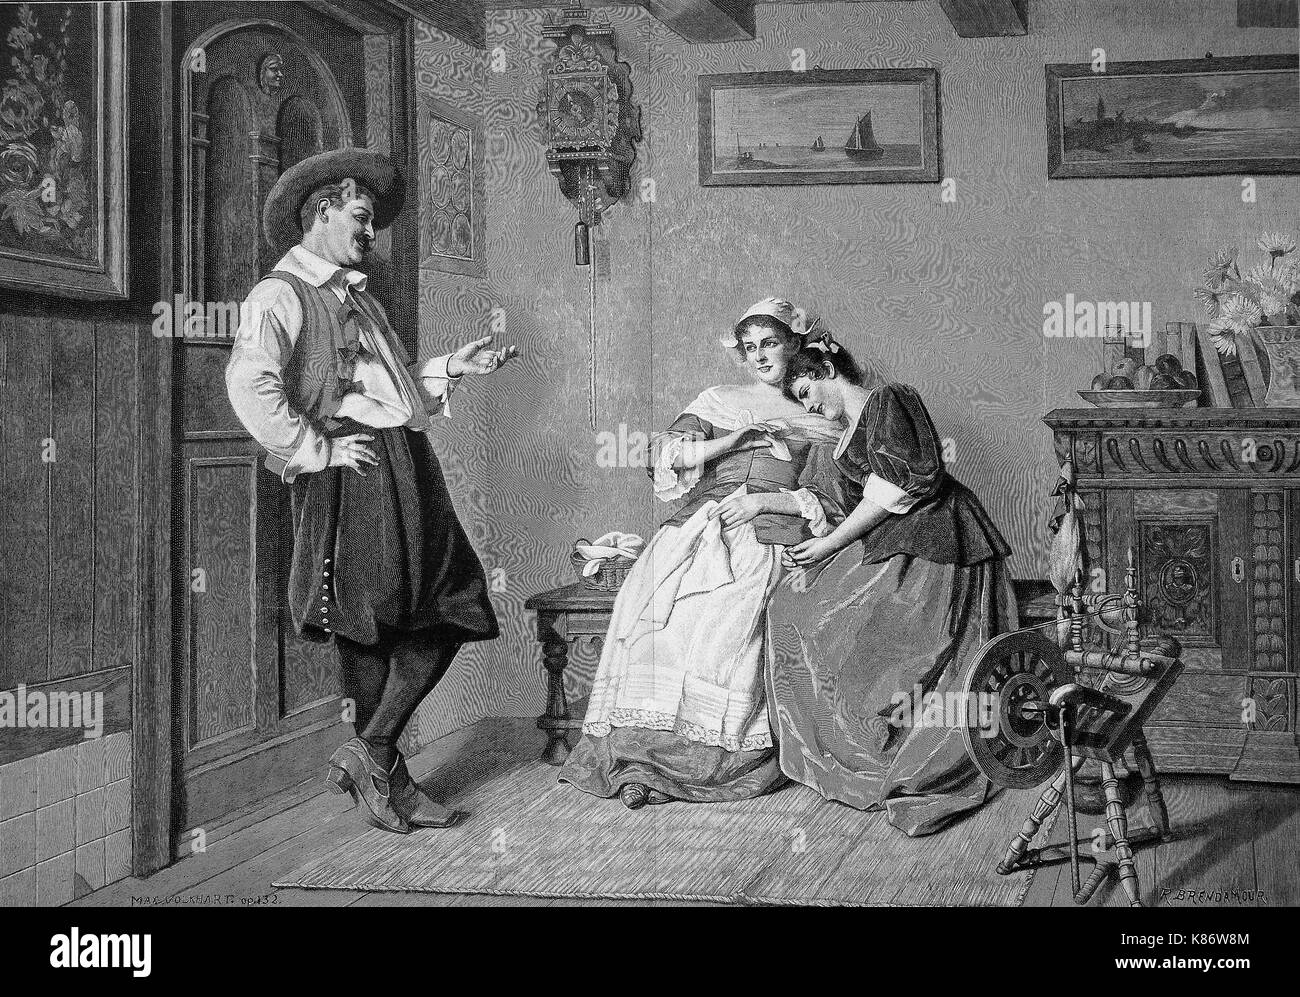 situation in a living room in 1850, young man teases two women, spinning wheel, girlfriends, flirt, Digital improved reproduction of an original woodprint from the 19th century - Stock Image